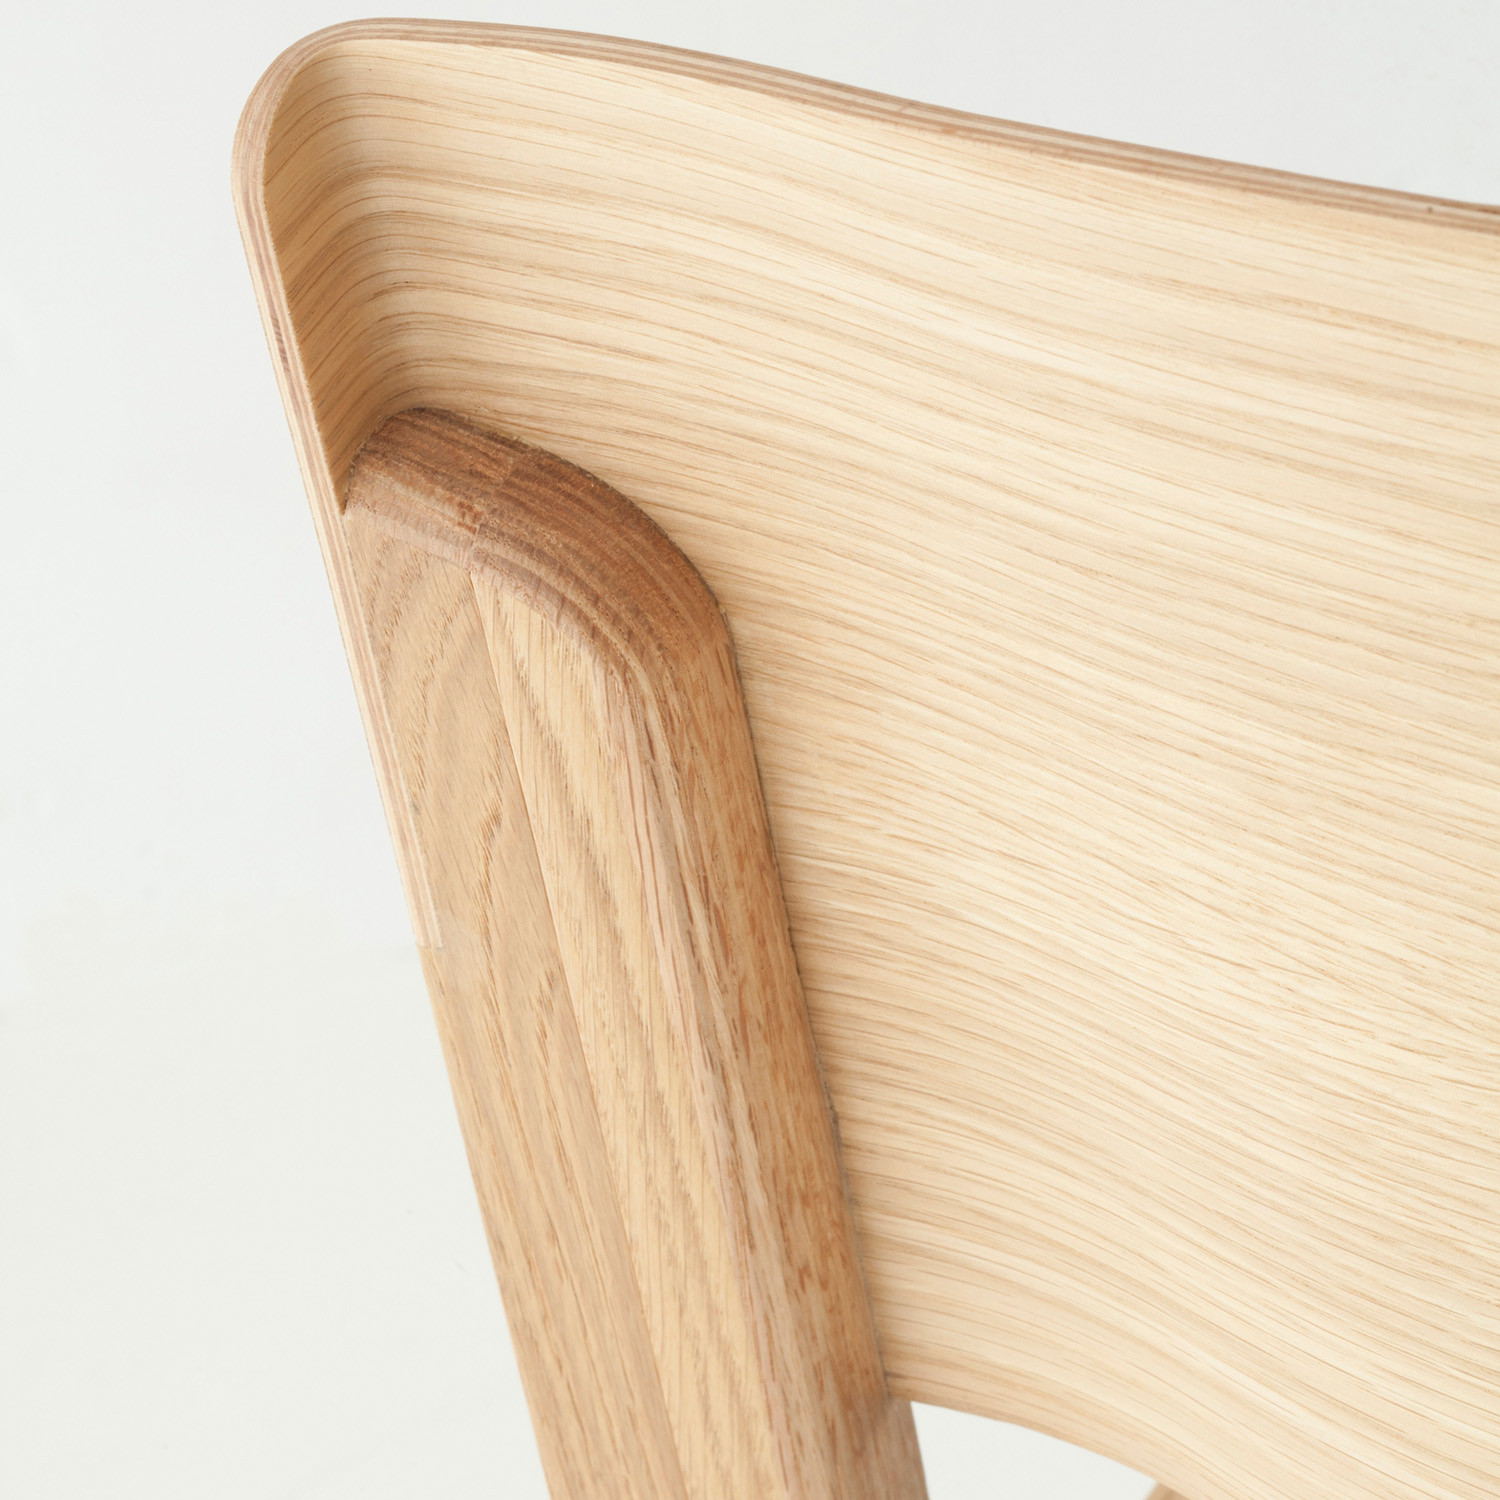 Theo wooden backrest detail